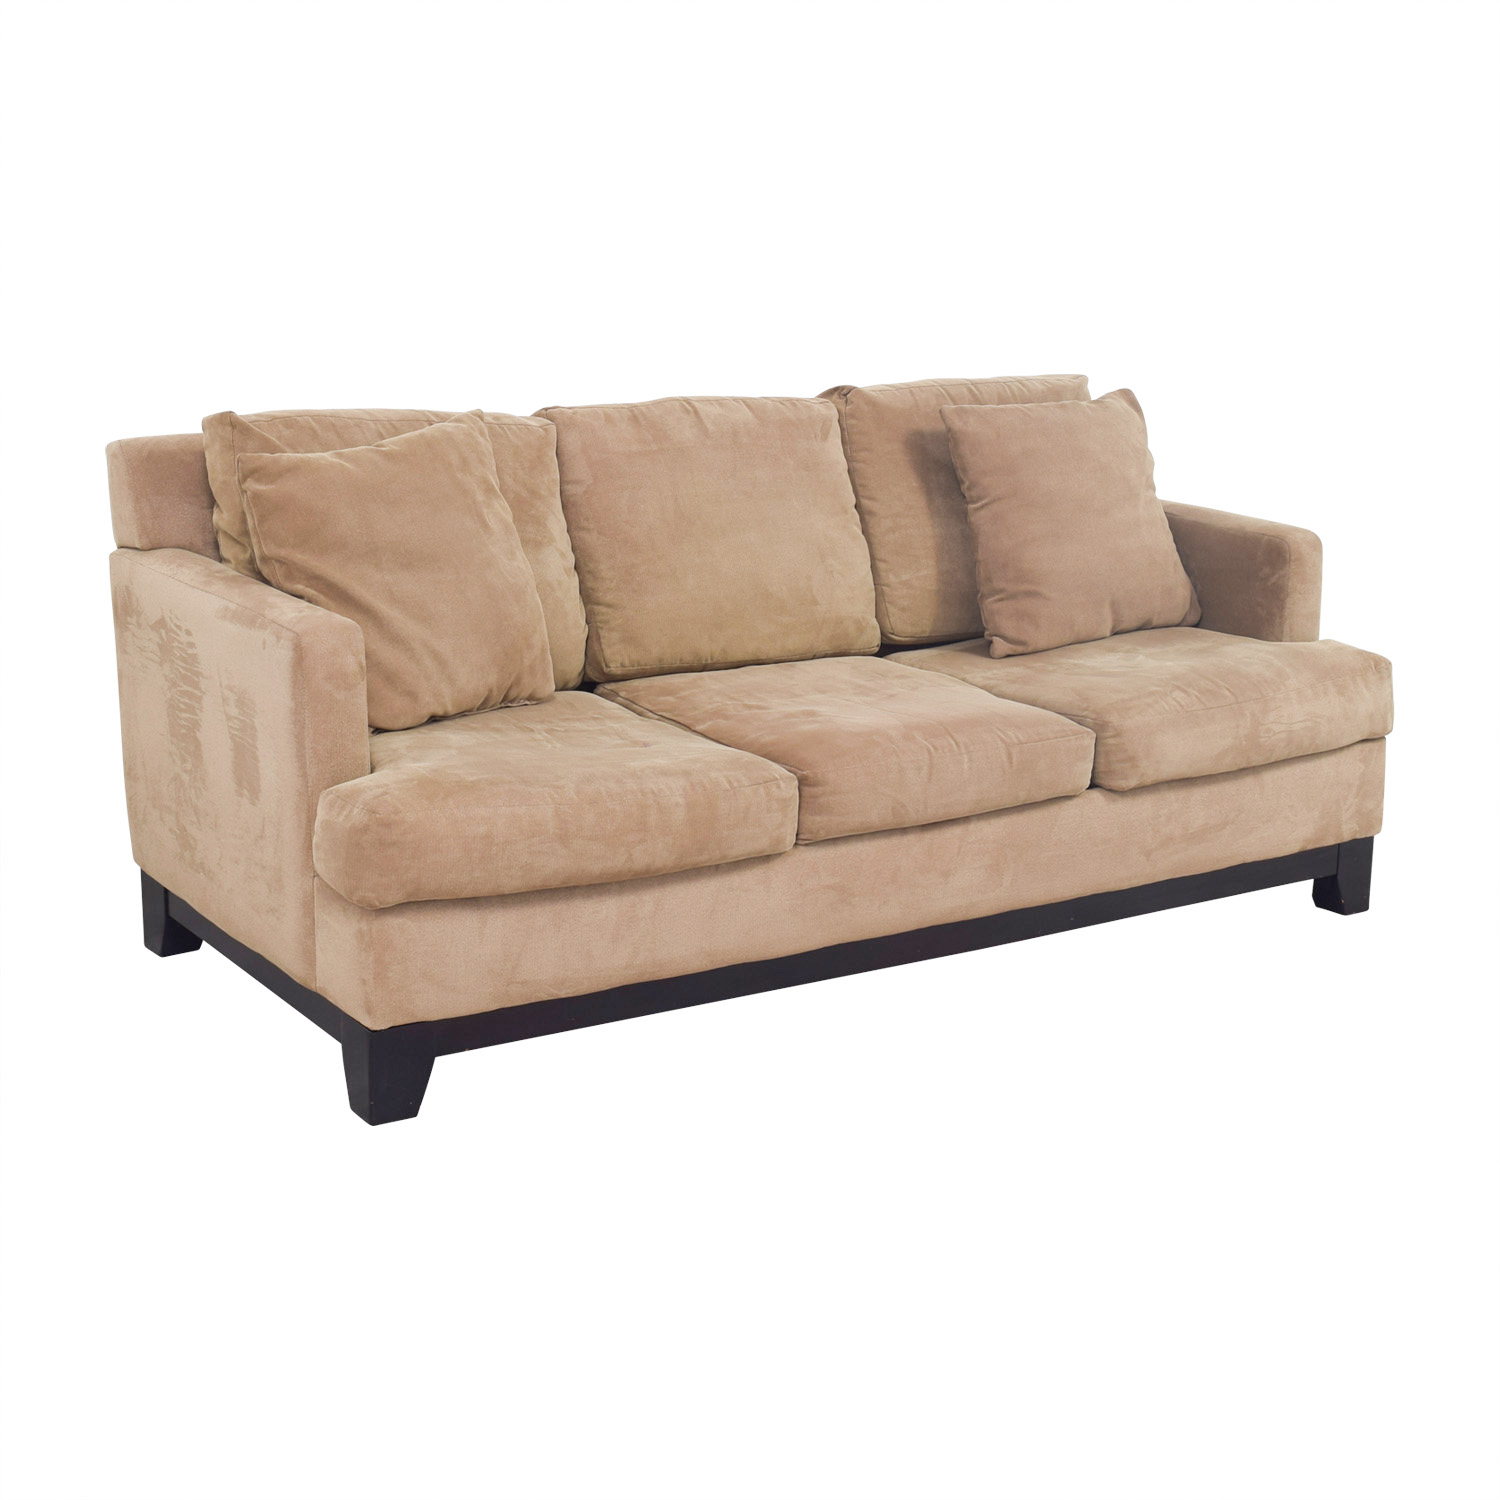 Macys Macys Light Brown Microfiber Three-Cushion Sofa second hand